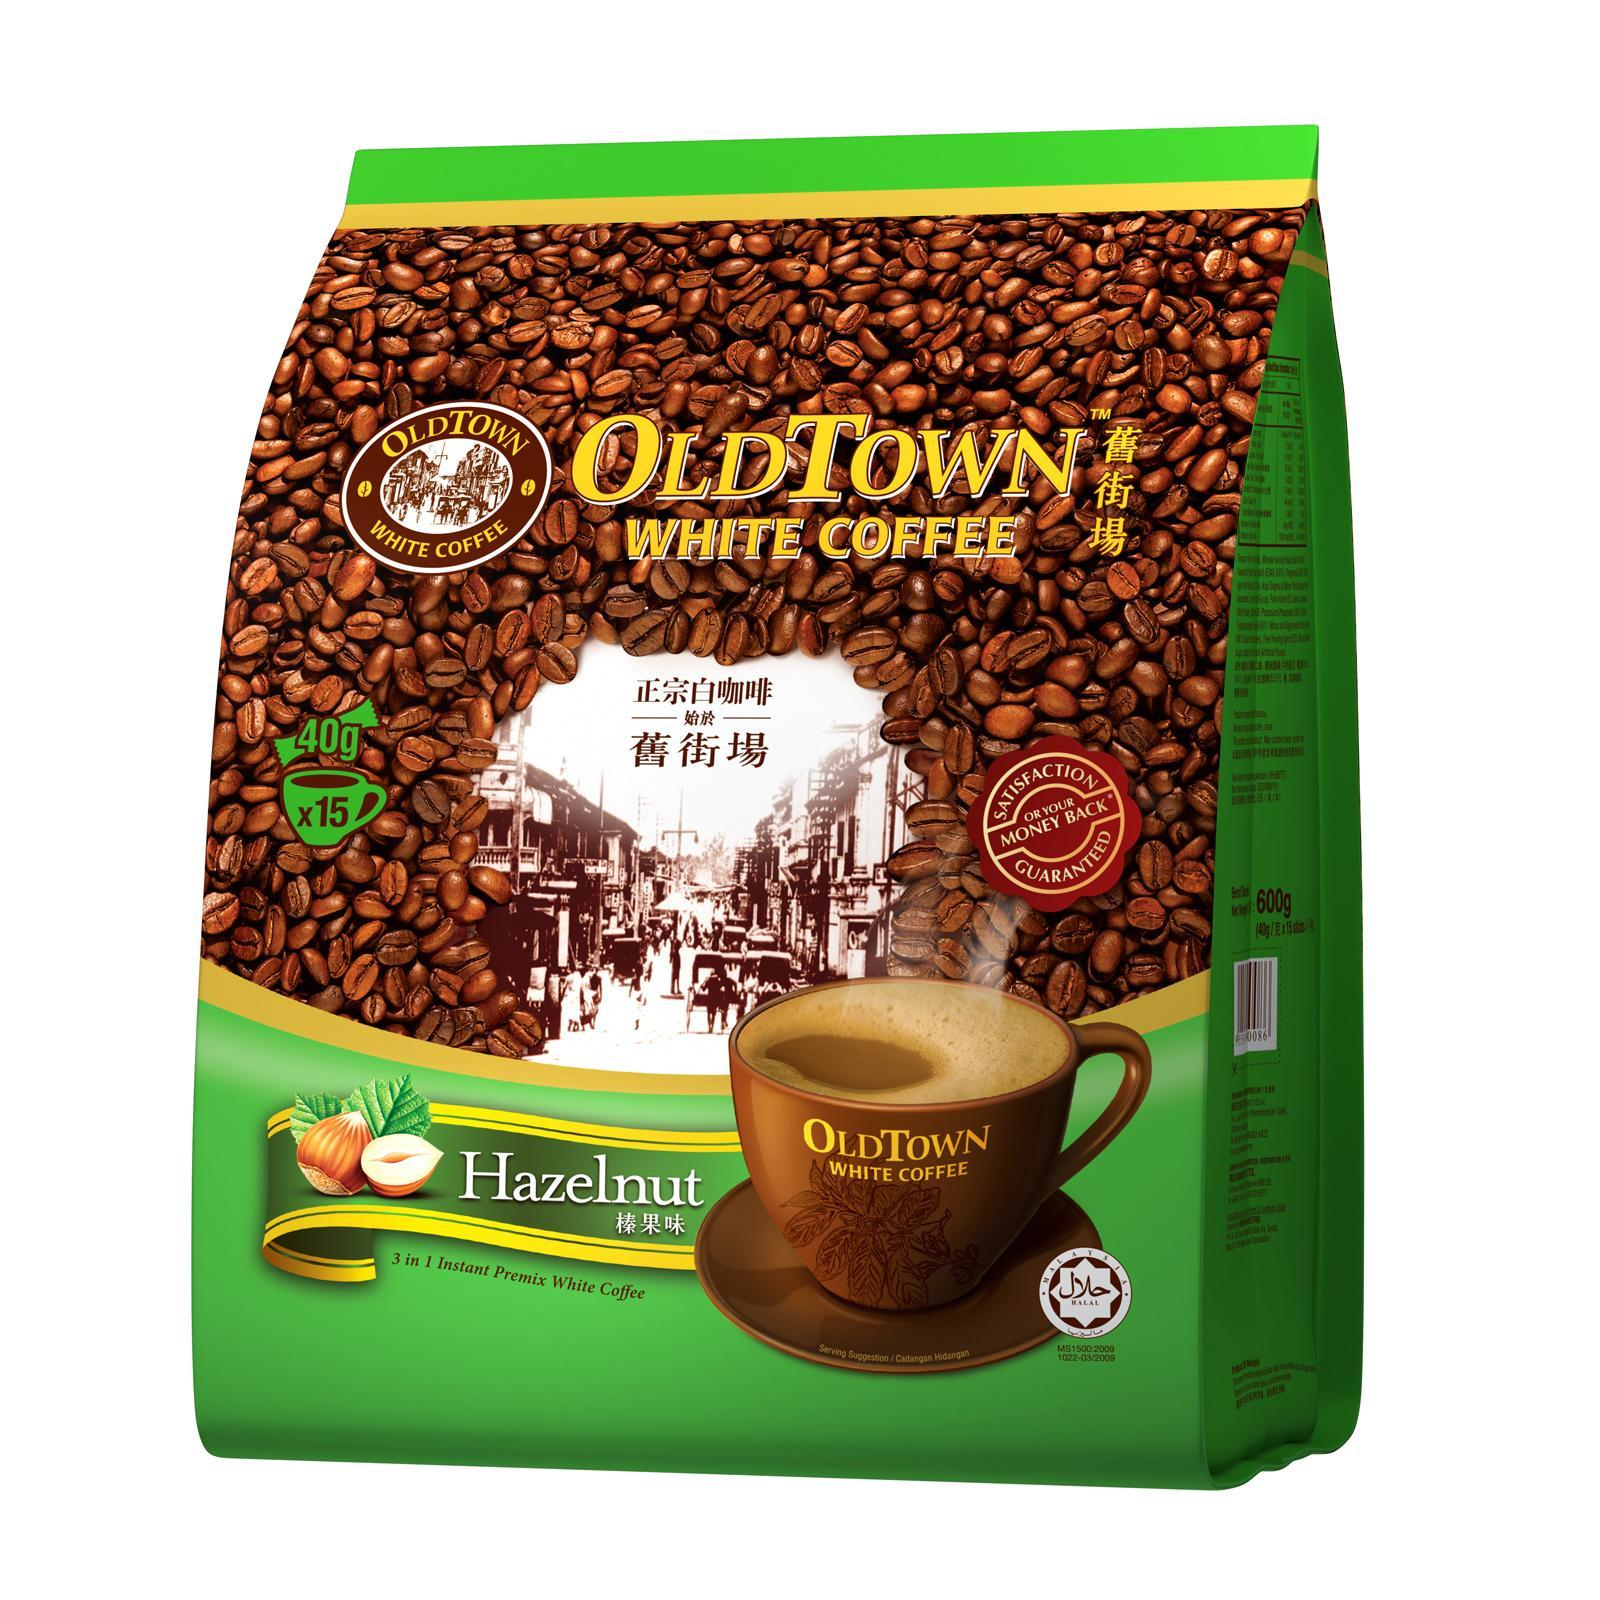 OLD TOWN White Coffee 3 in 1 Hazelnut 15sX38g